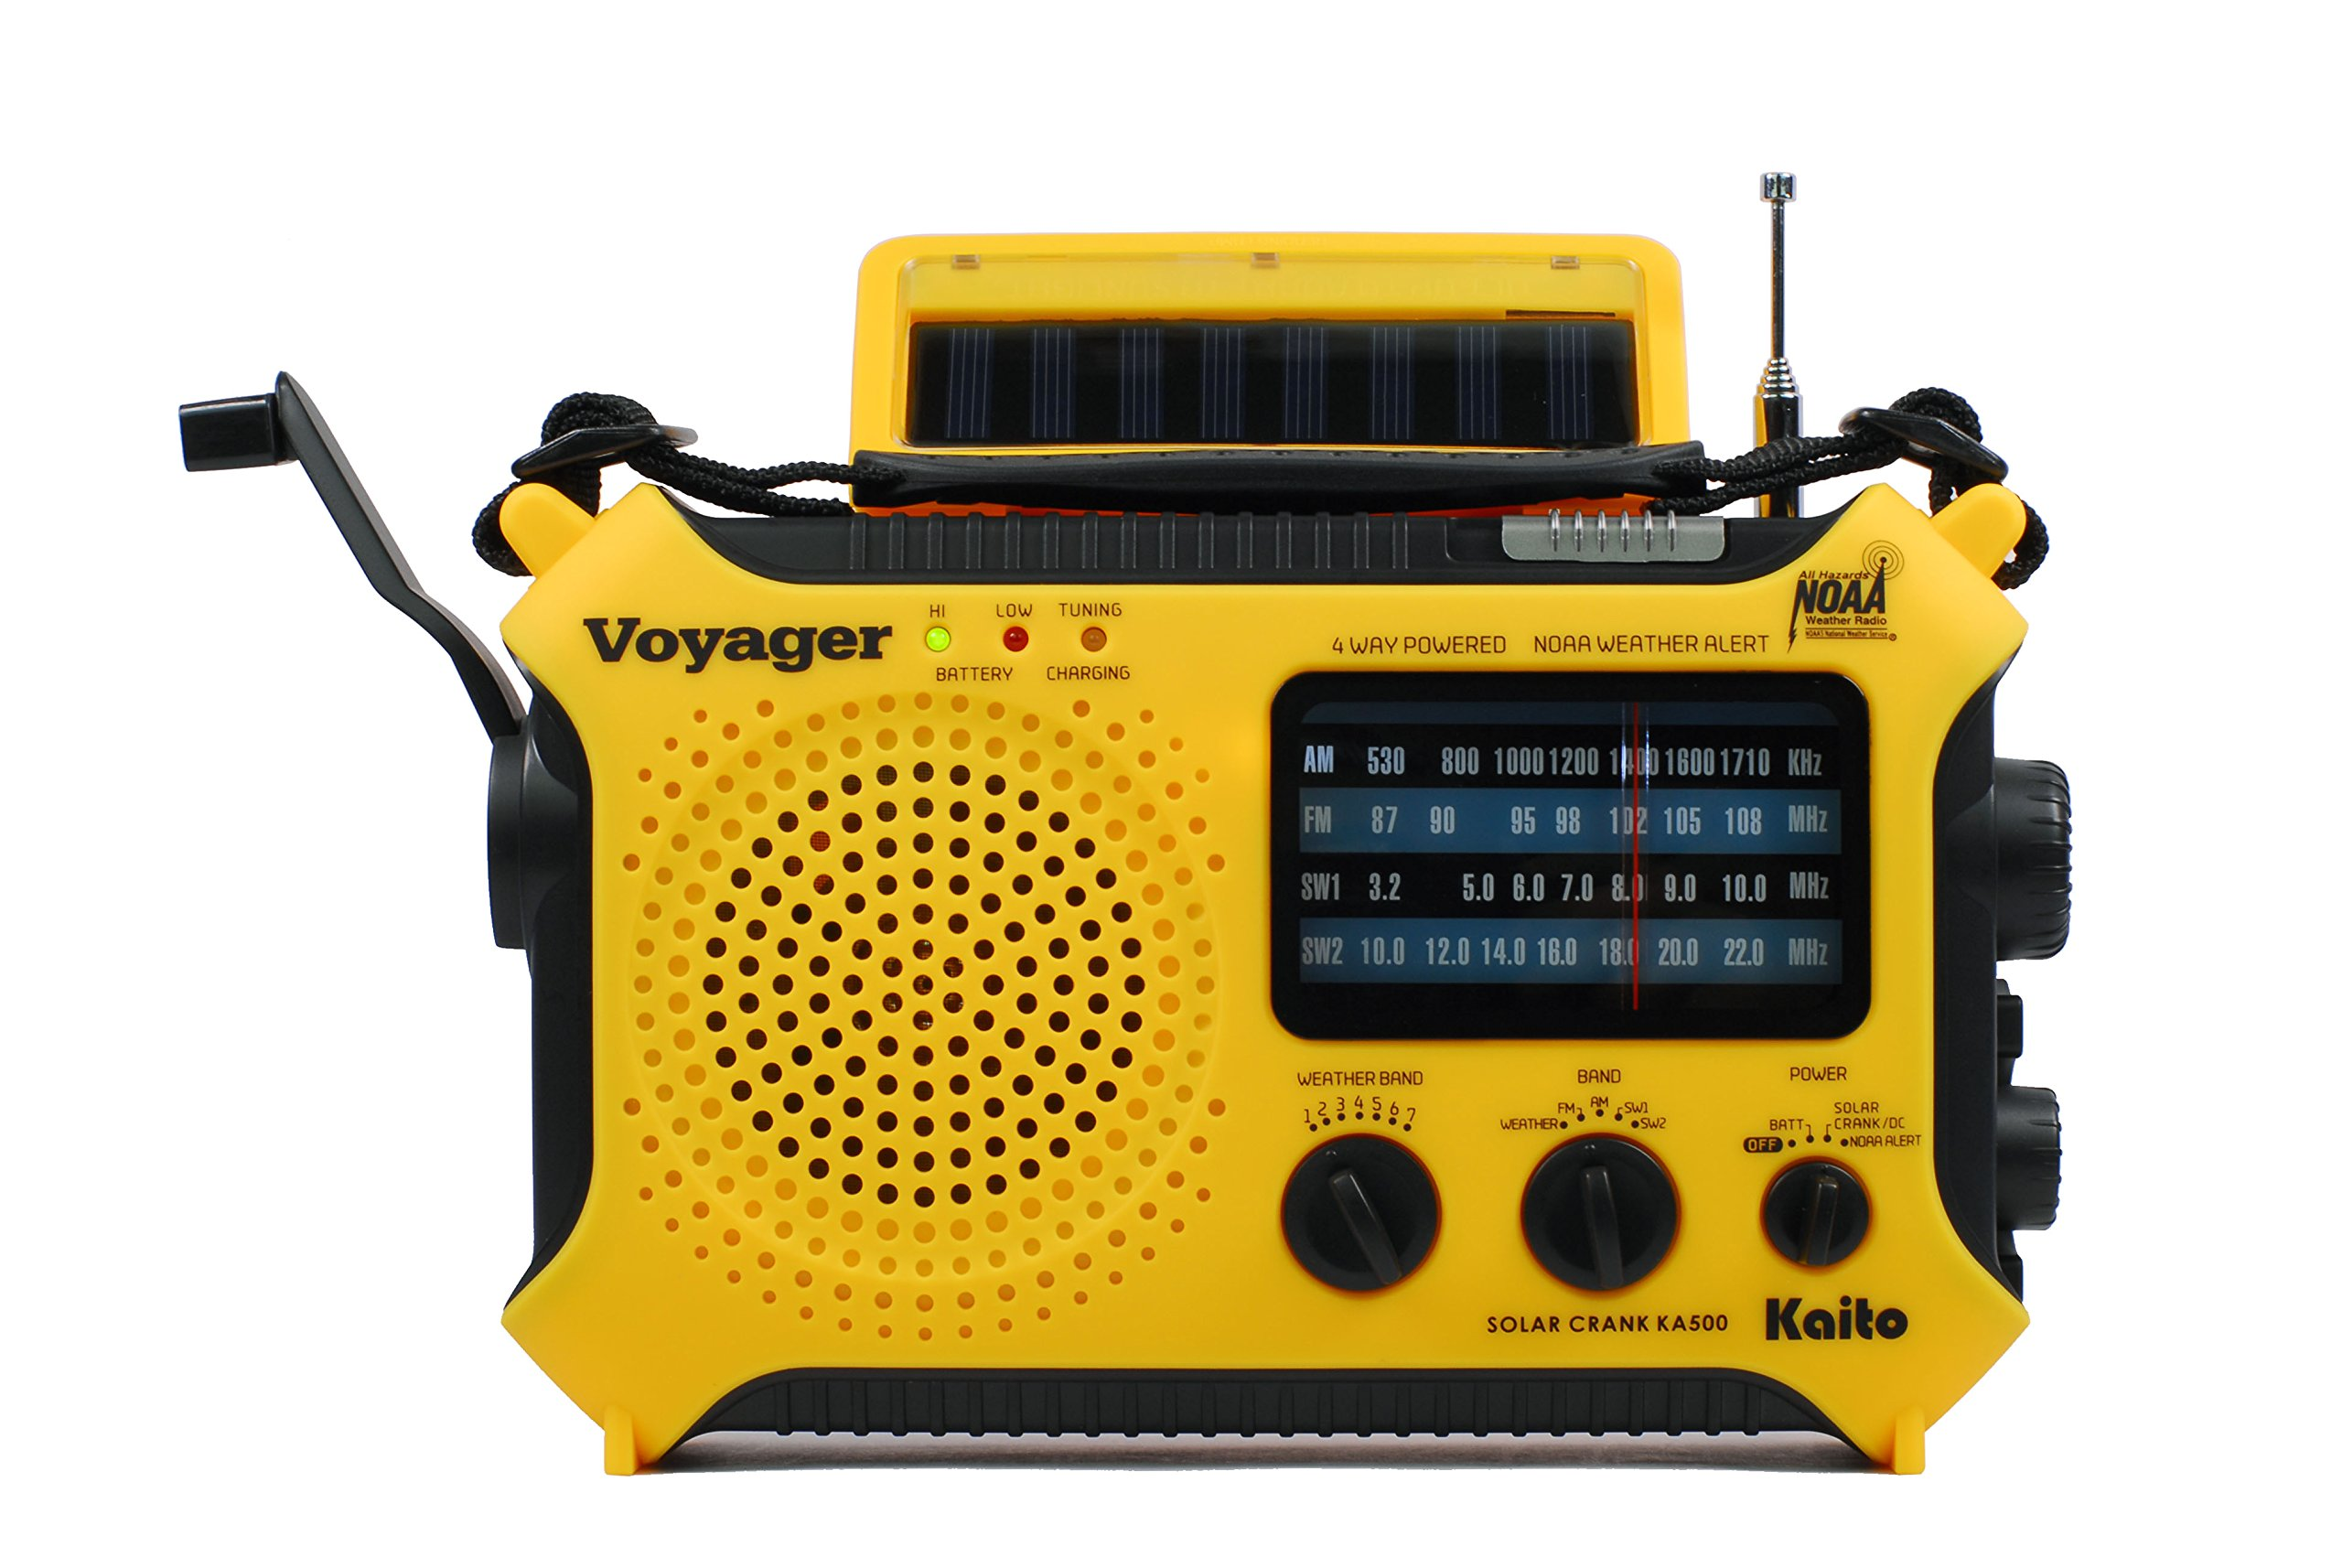 Kaito KA500 5-way Powered Solar Power,Dynamo Crank, Wind Up Emergency AM/FM/SW/NOAA Weather Alert Radio with Flashlight,Reading Lamp and Cellphone Charger, Yellow by Kaito